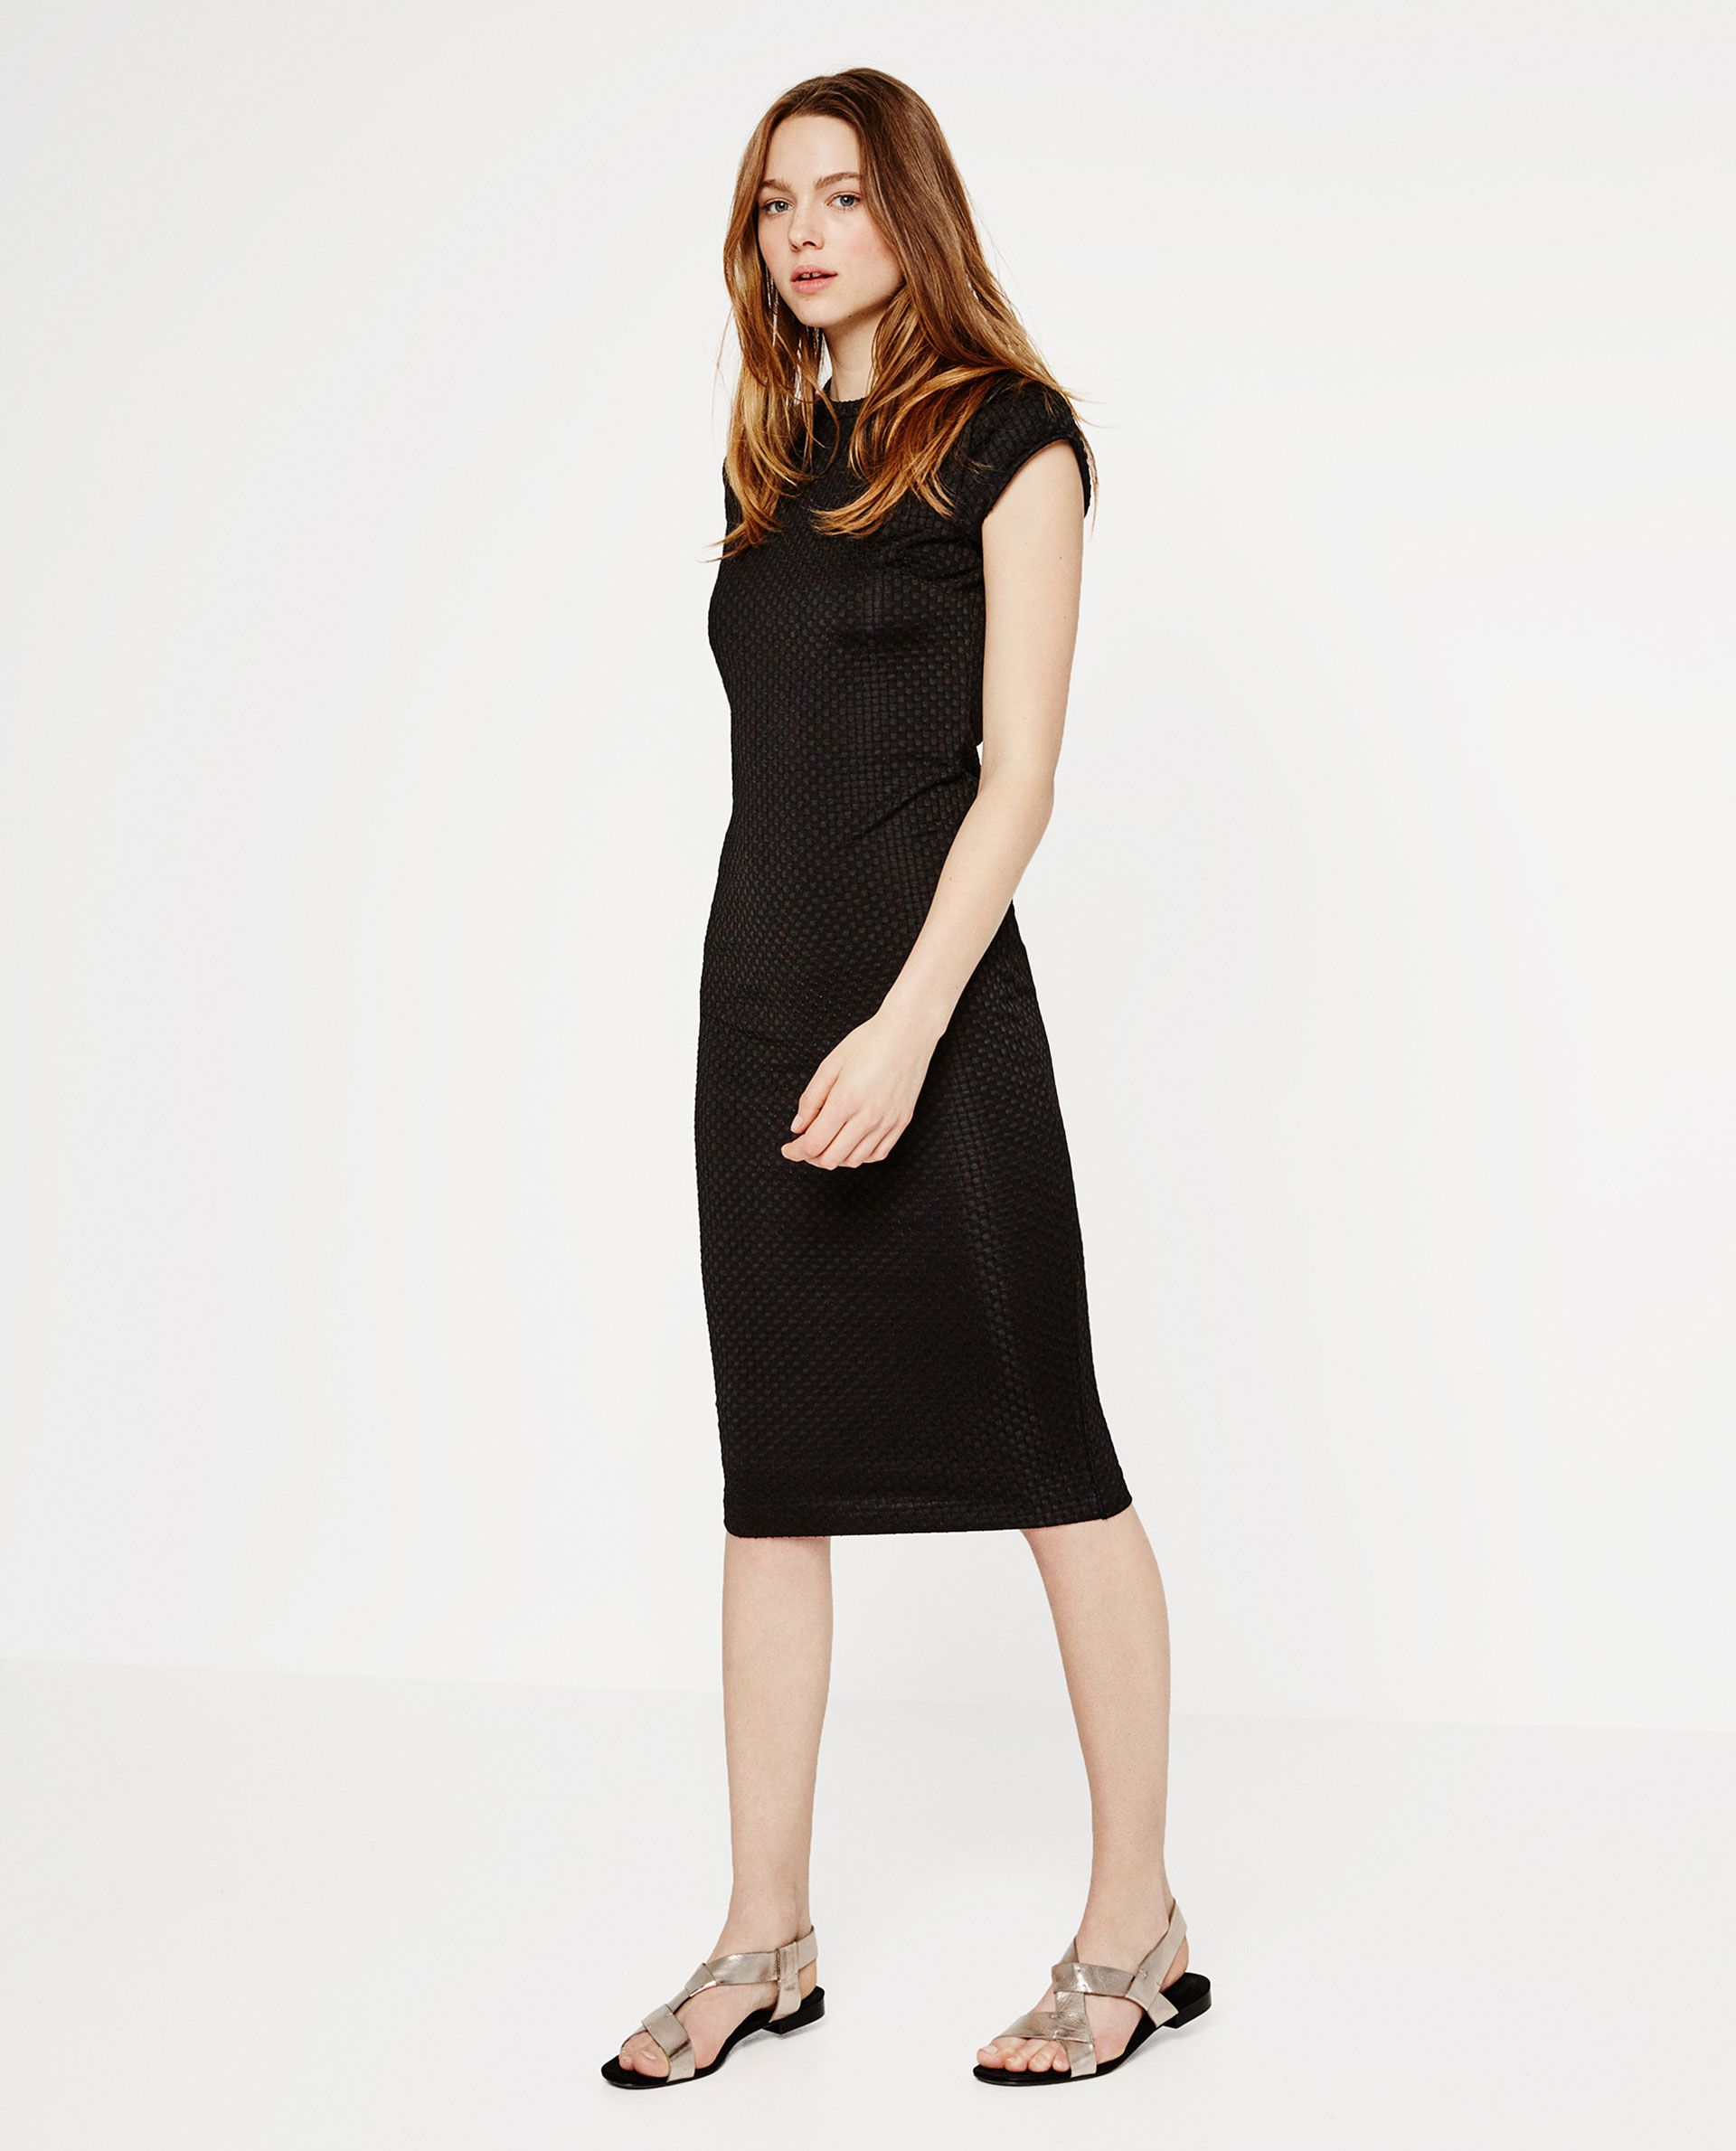 ZARA - WOMAN - MID-LENGTH DRESS